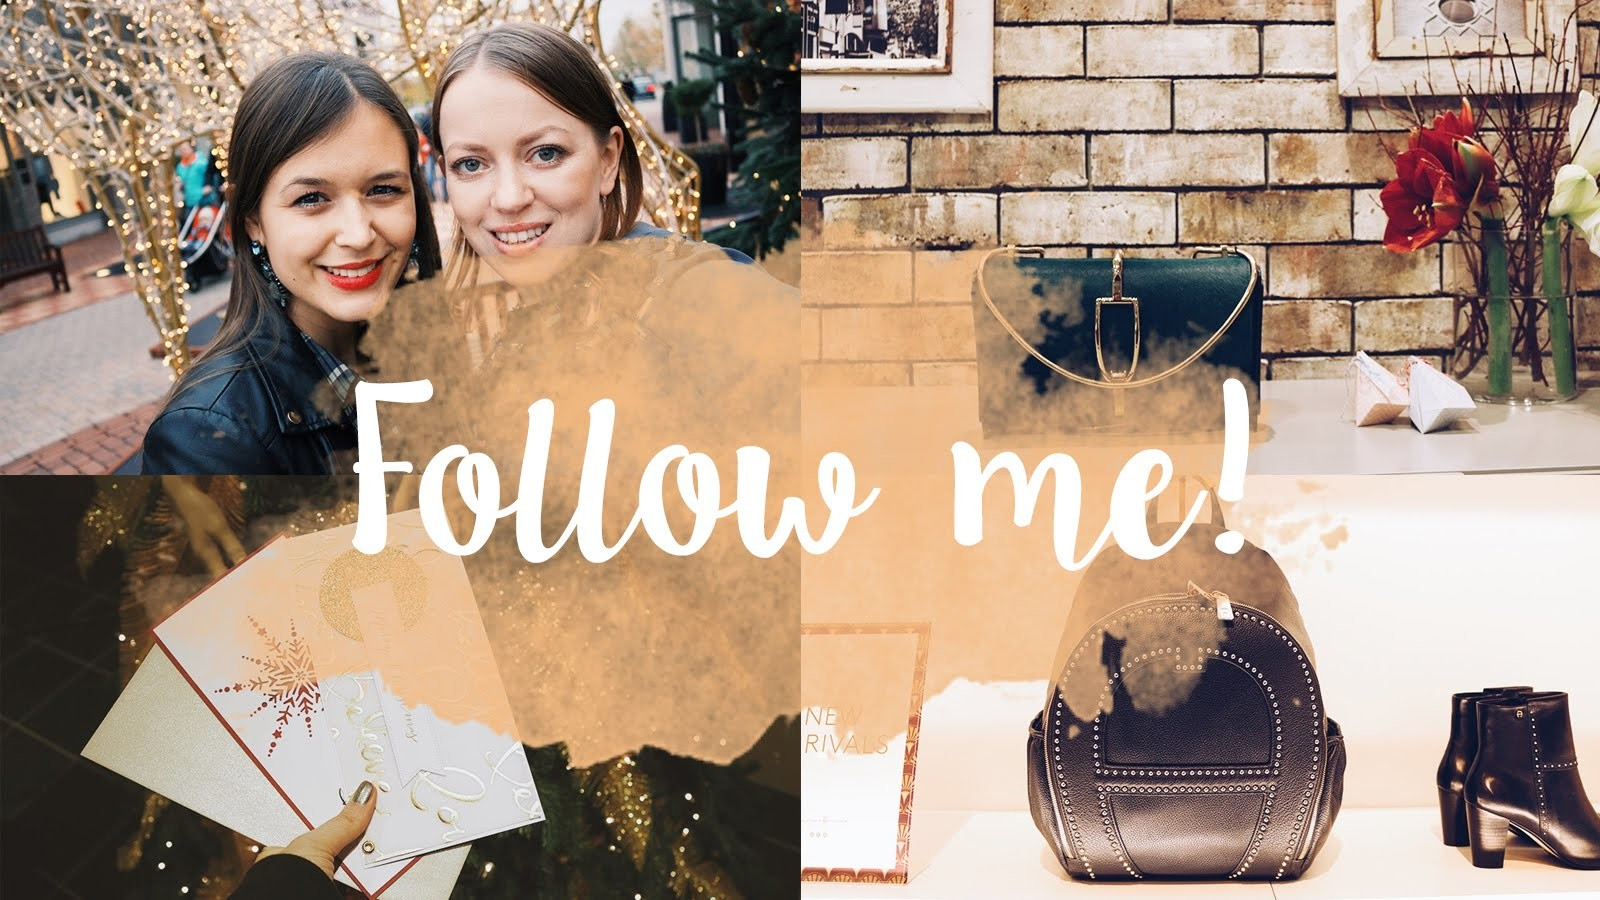 FOLLOW ME: DIY-Workshop, XMAS-Shopping, Blogger-Dasein